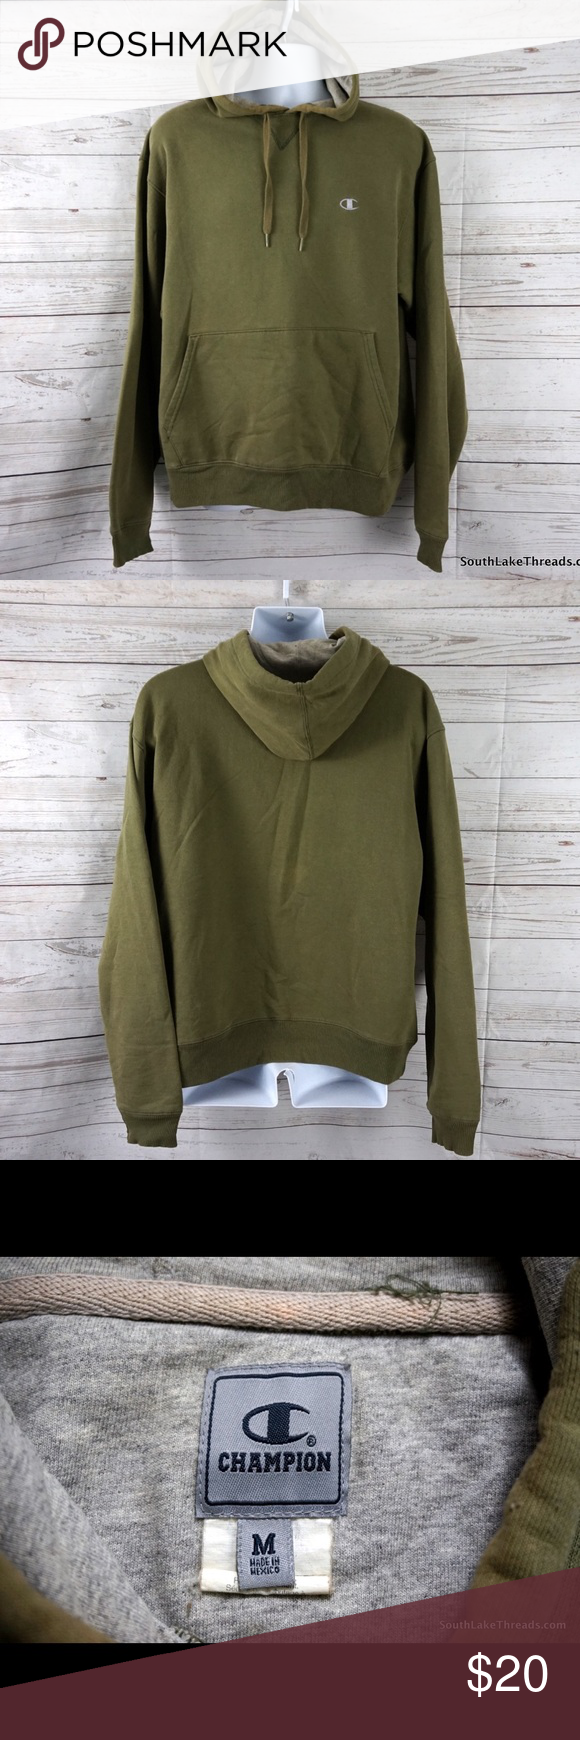 aeb6a5ba2f47 Champion Olive Green Hoodie Men s Medium Yeezy CHAMPION Olive Green Fleece  Heavy Knit Hooded Sweatshirt Men s